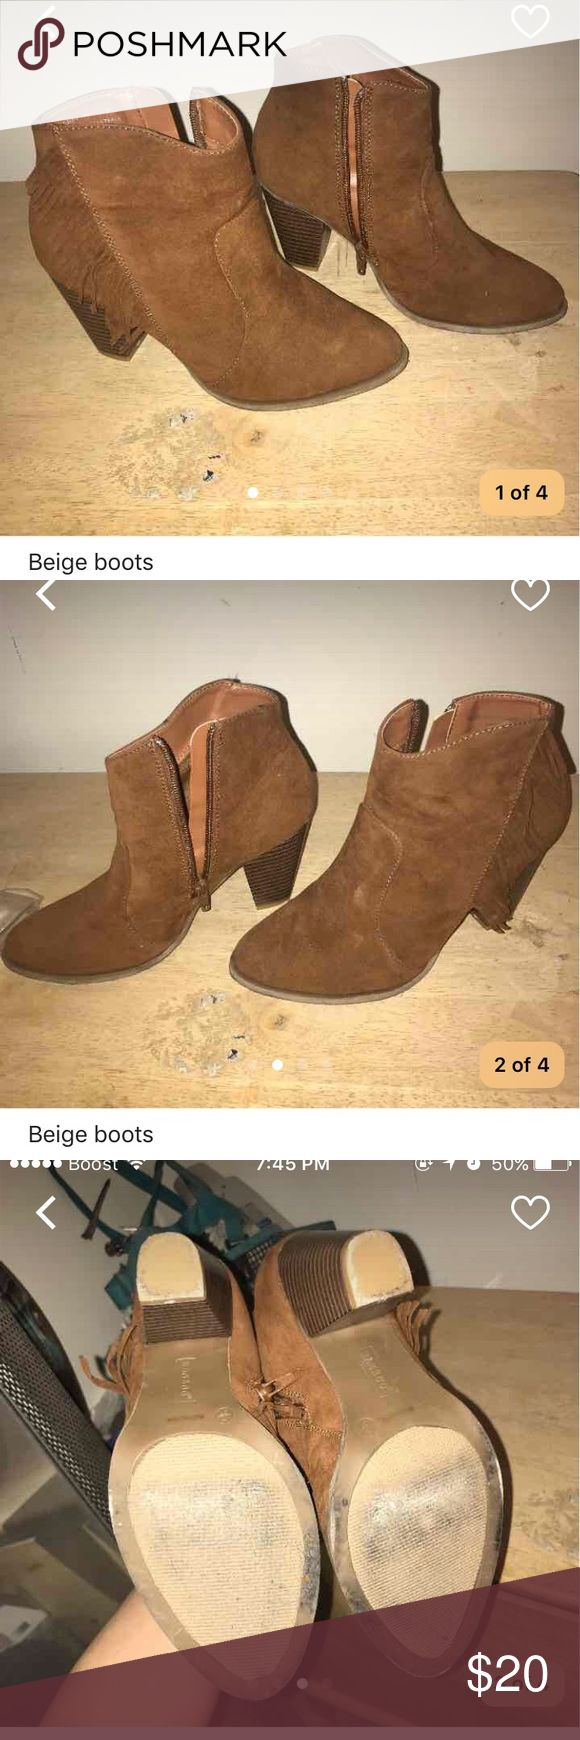 Agaci beige boots. Size 7 worn once or twice a'gaci Shoes Ankle Boots & Booties